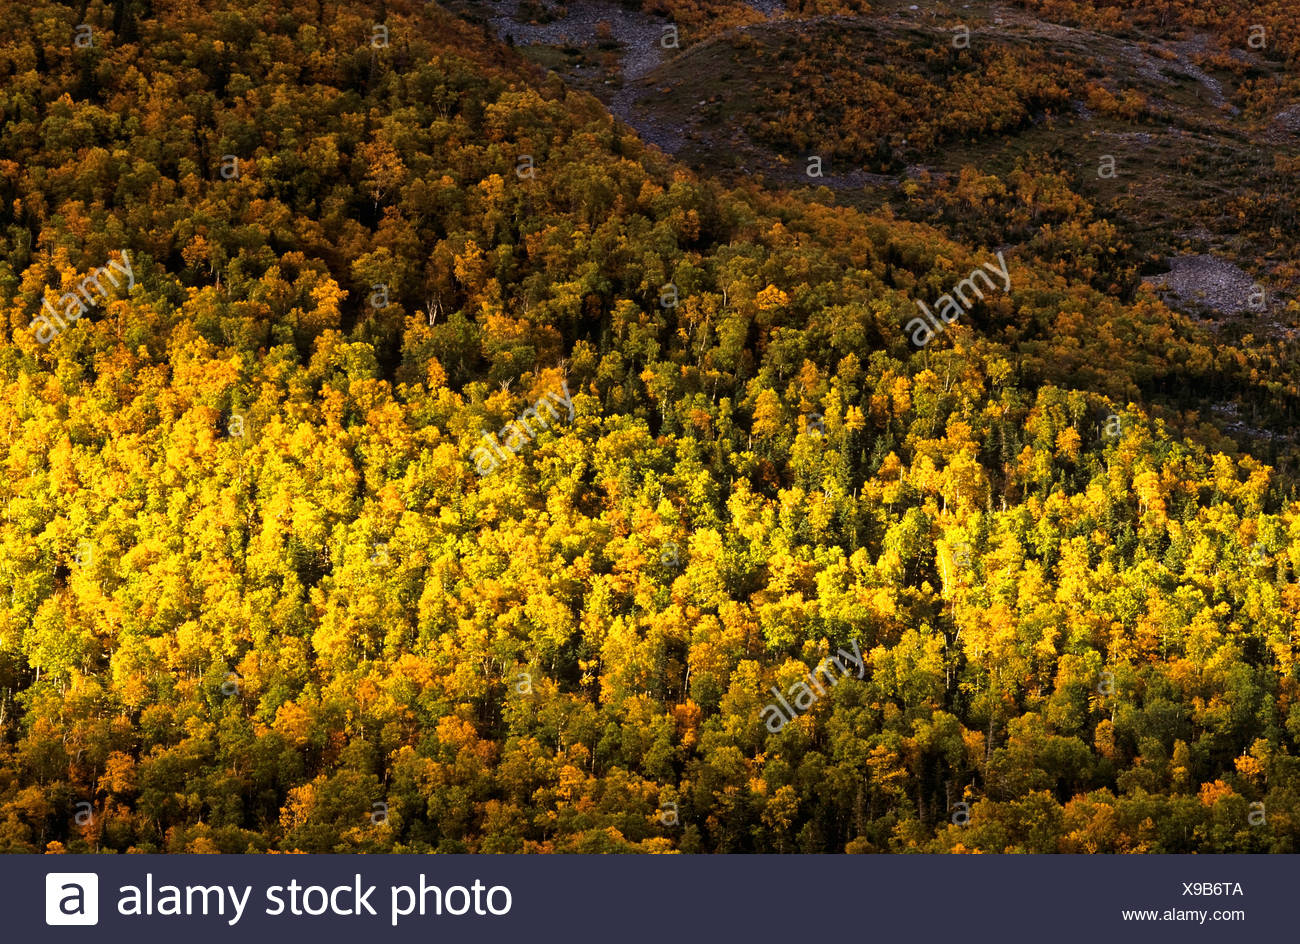 Forest in Fall, Gros Morne National Park, Newfoundland, Canada - Stock Image